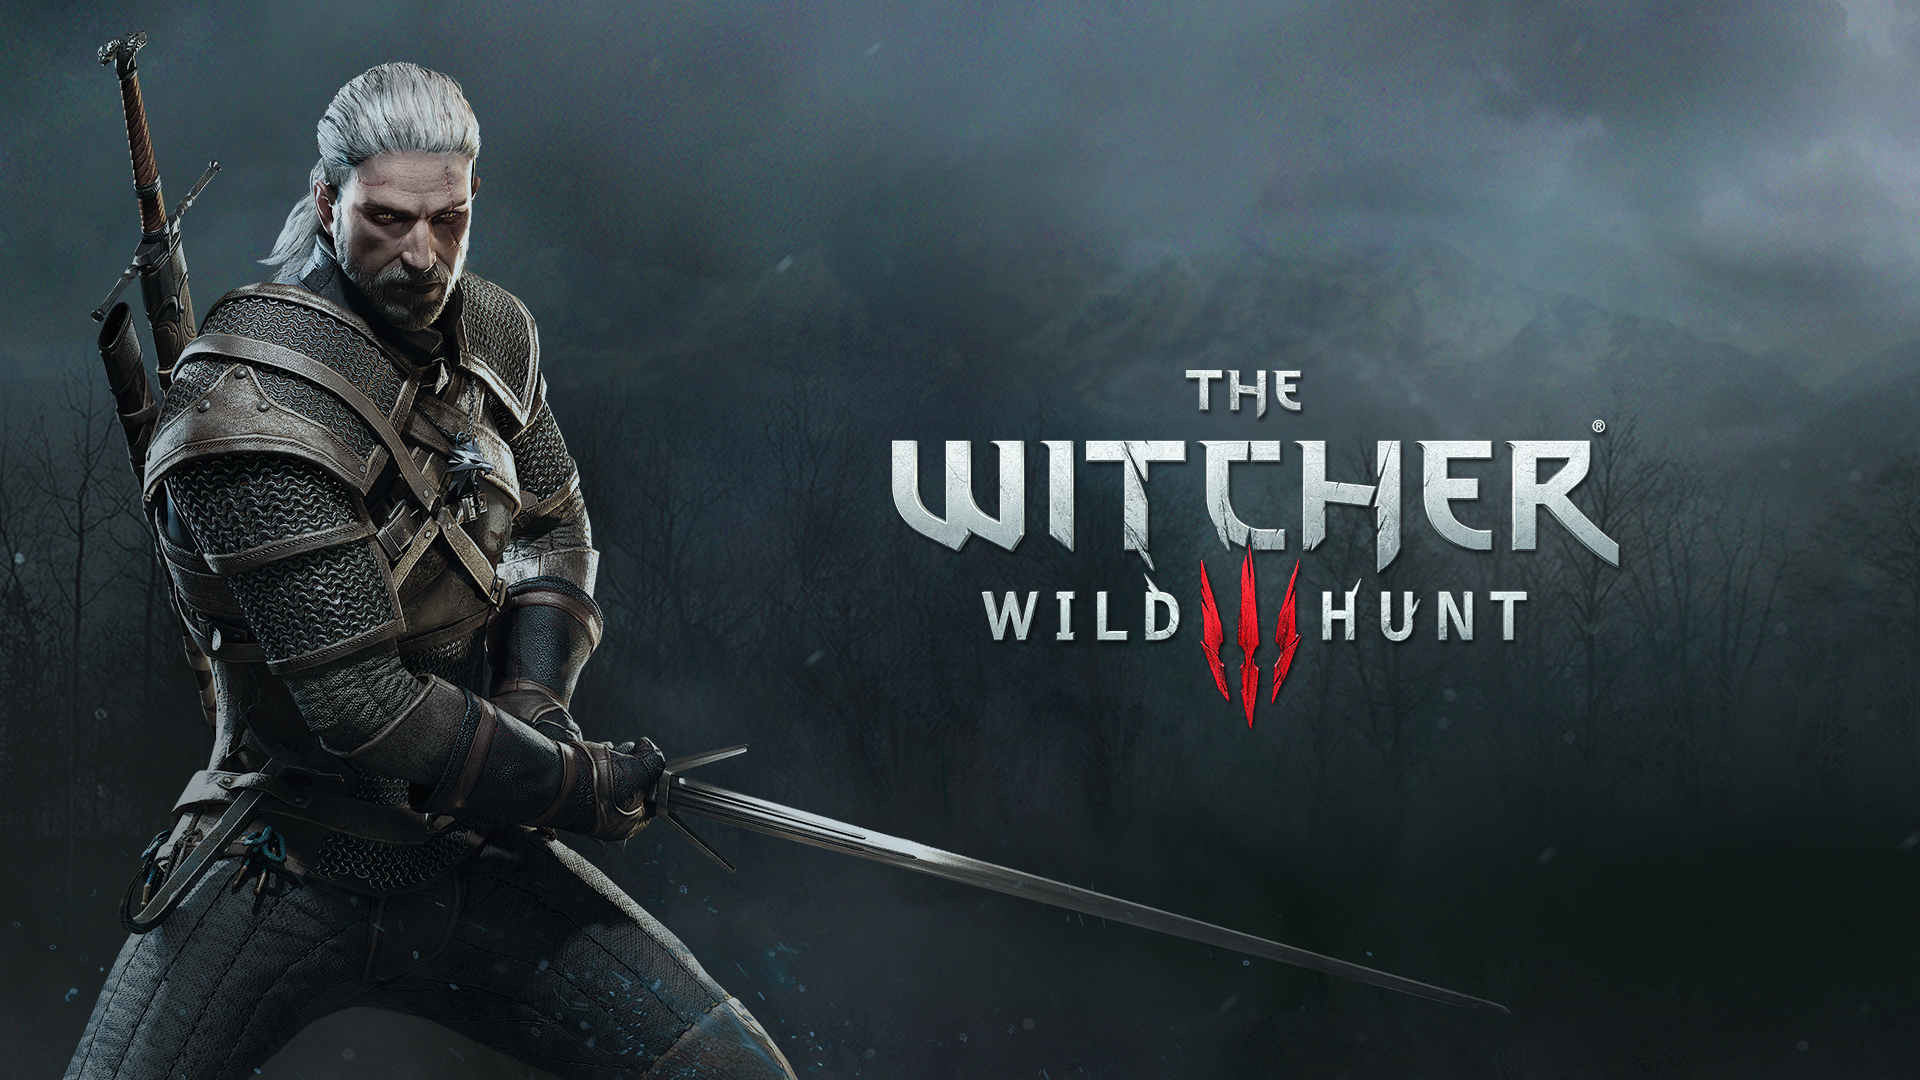 BlurryPhoenix Reflects: The Witcher 3 – Wild Hunt